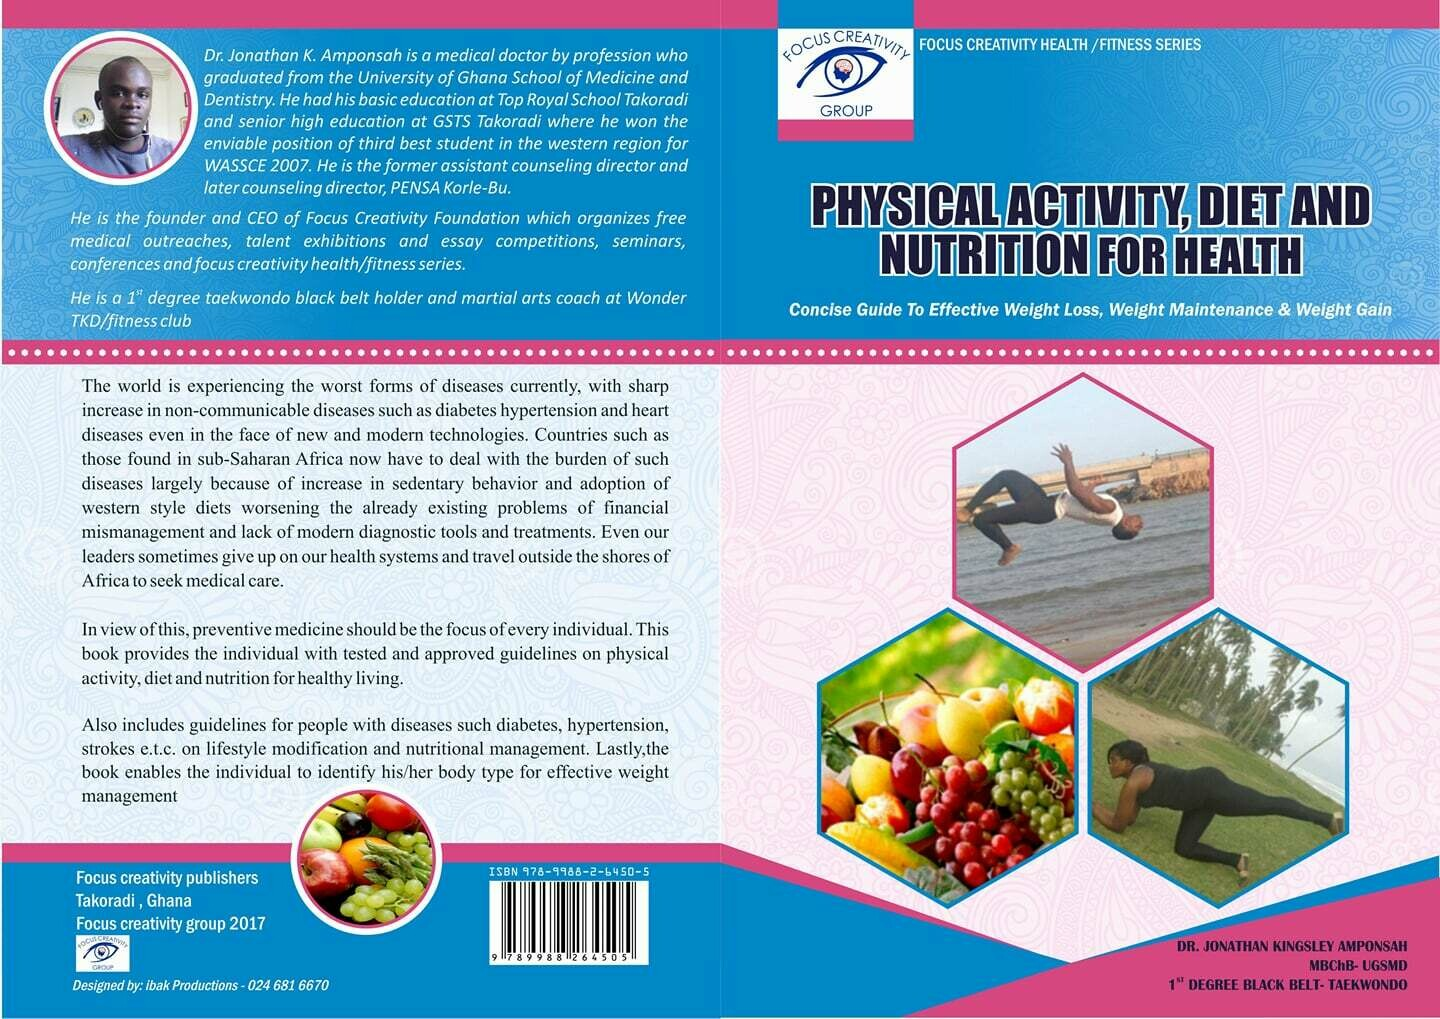 Physical Activity, Diet and Nutrition For Health